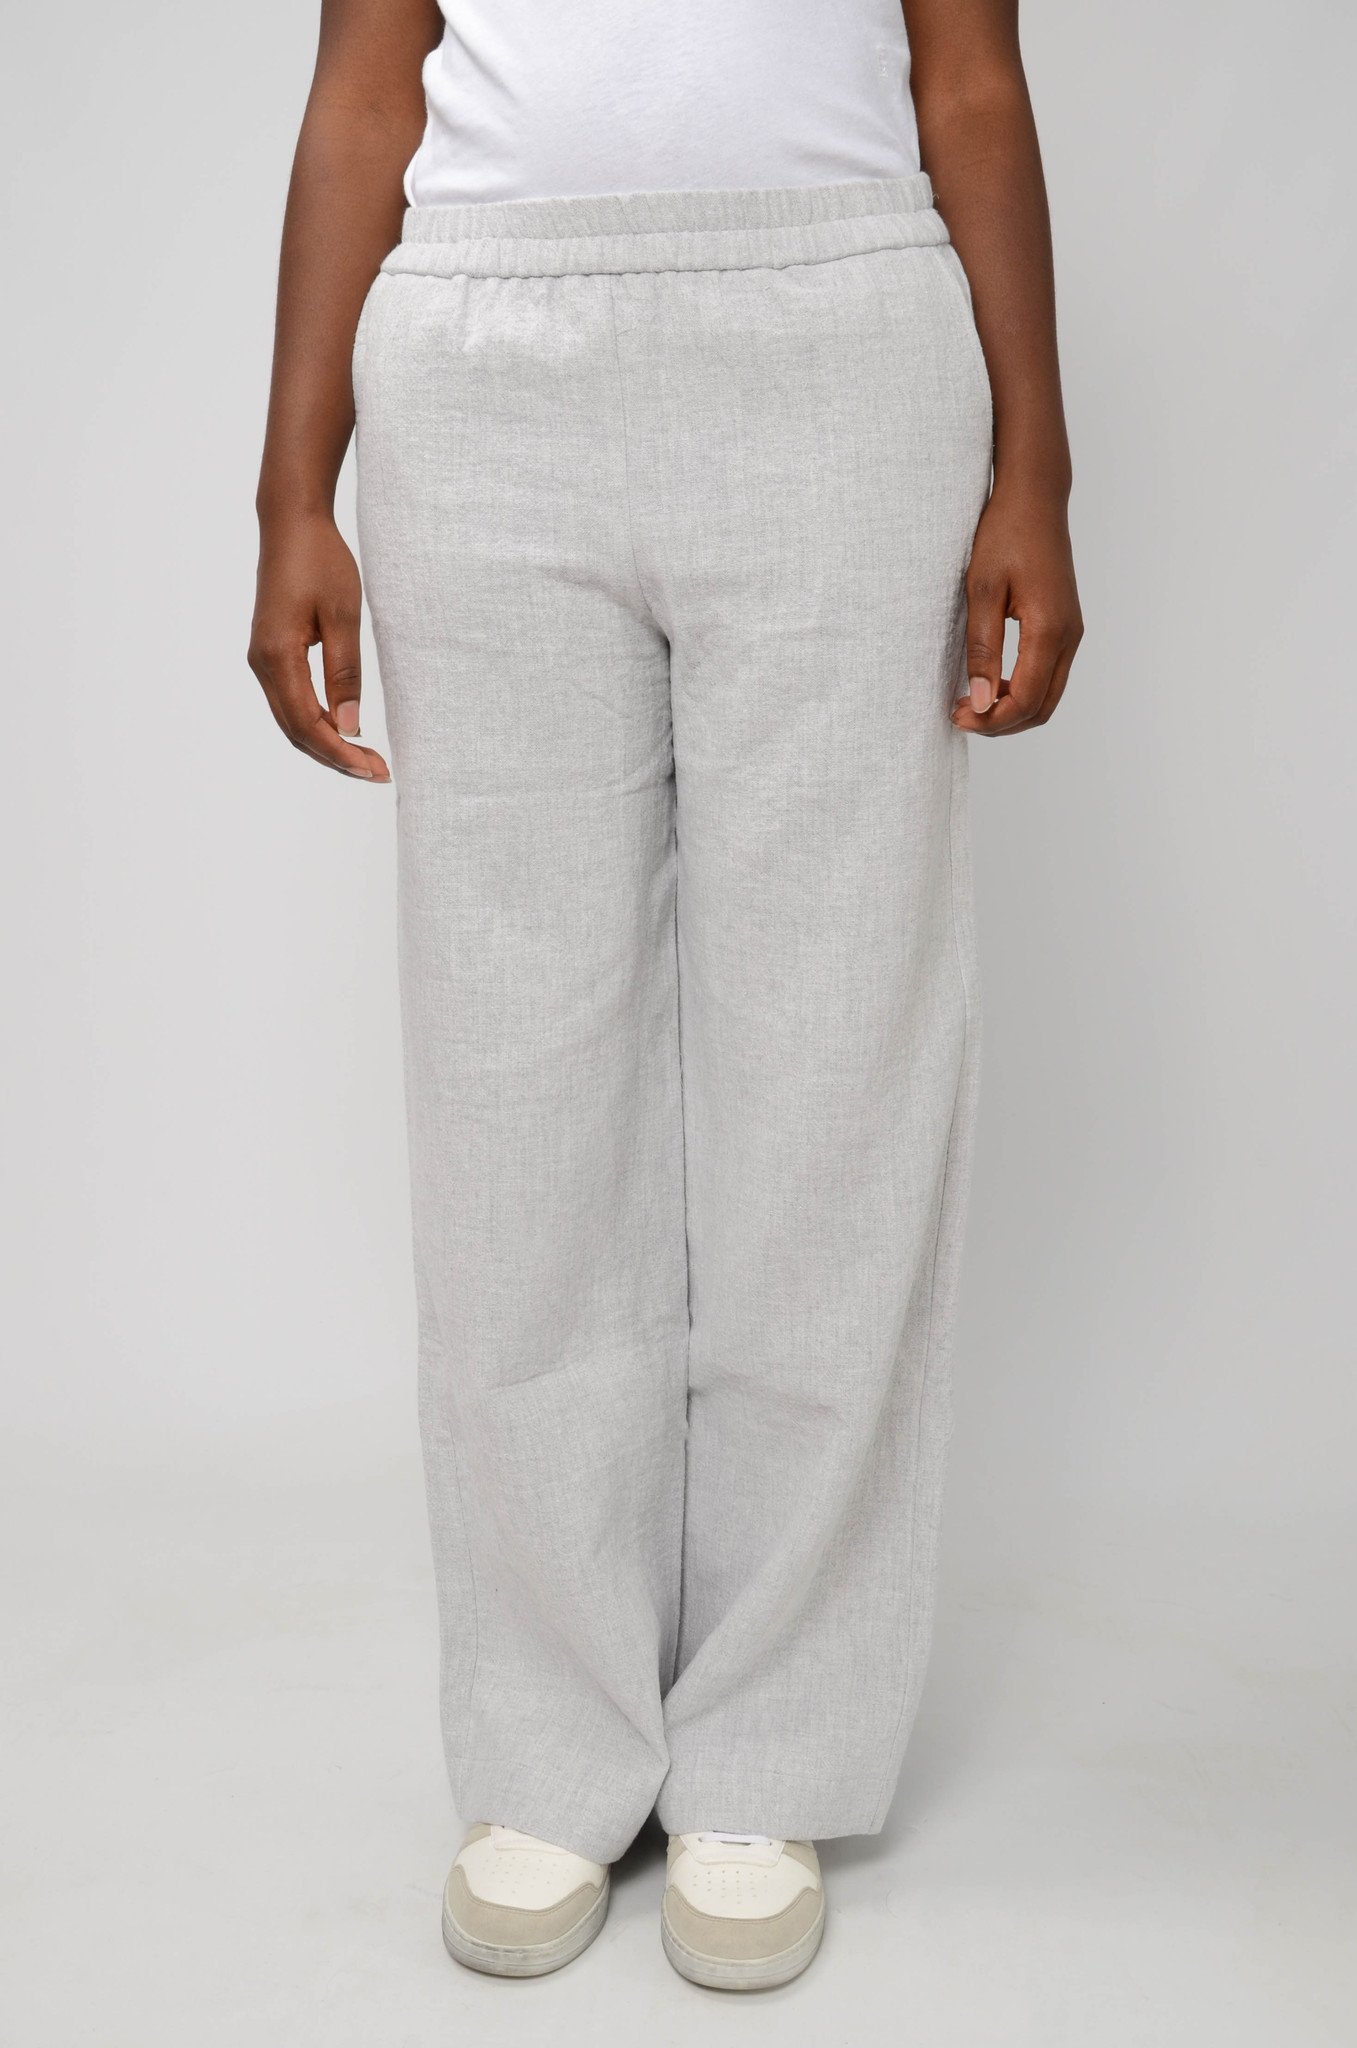 JACKIE TROUSERS IN LIGHT GREY-1